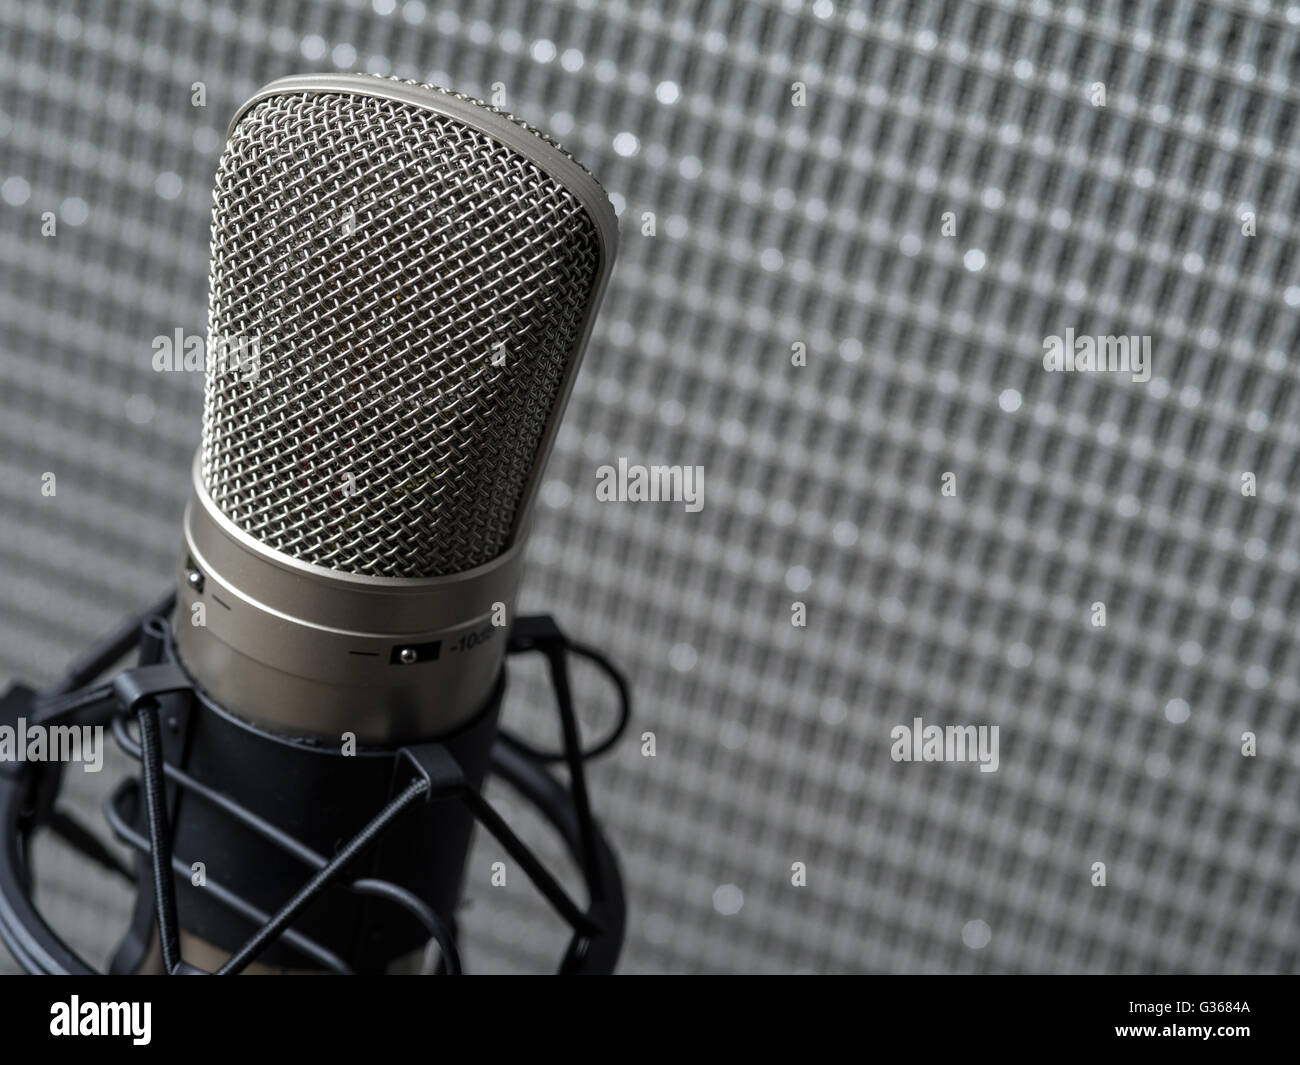 Photo of a large diaphragm studio condenser microphone in a shock mount in front of a guitar speaker cabinet. - Stock Image